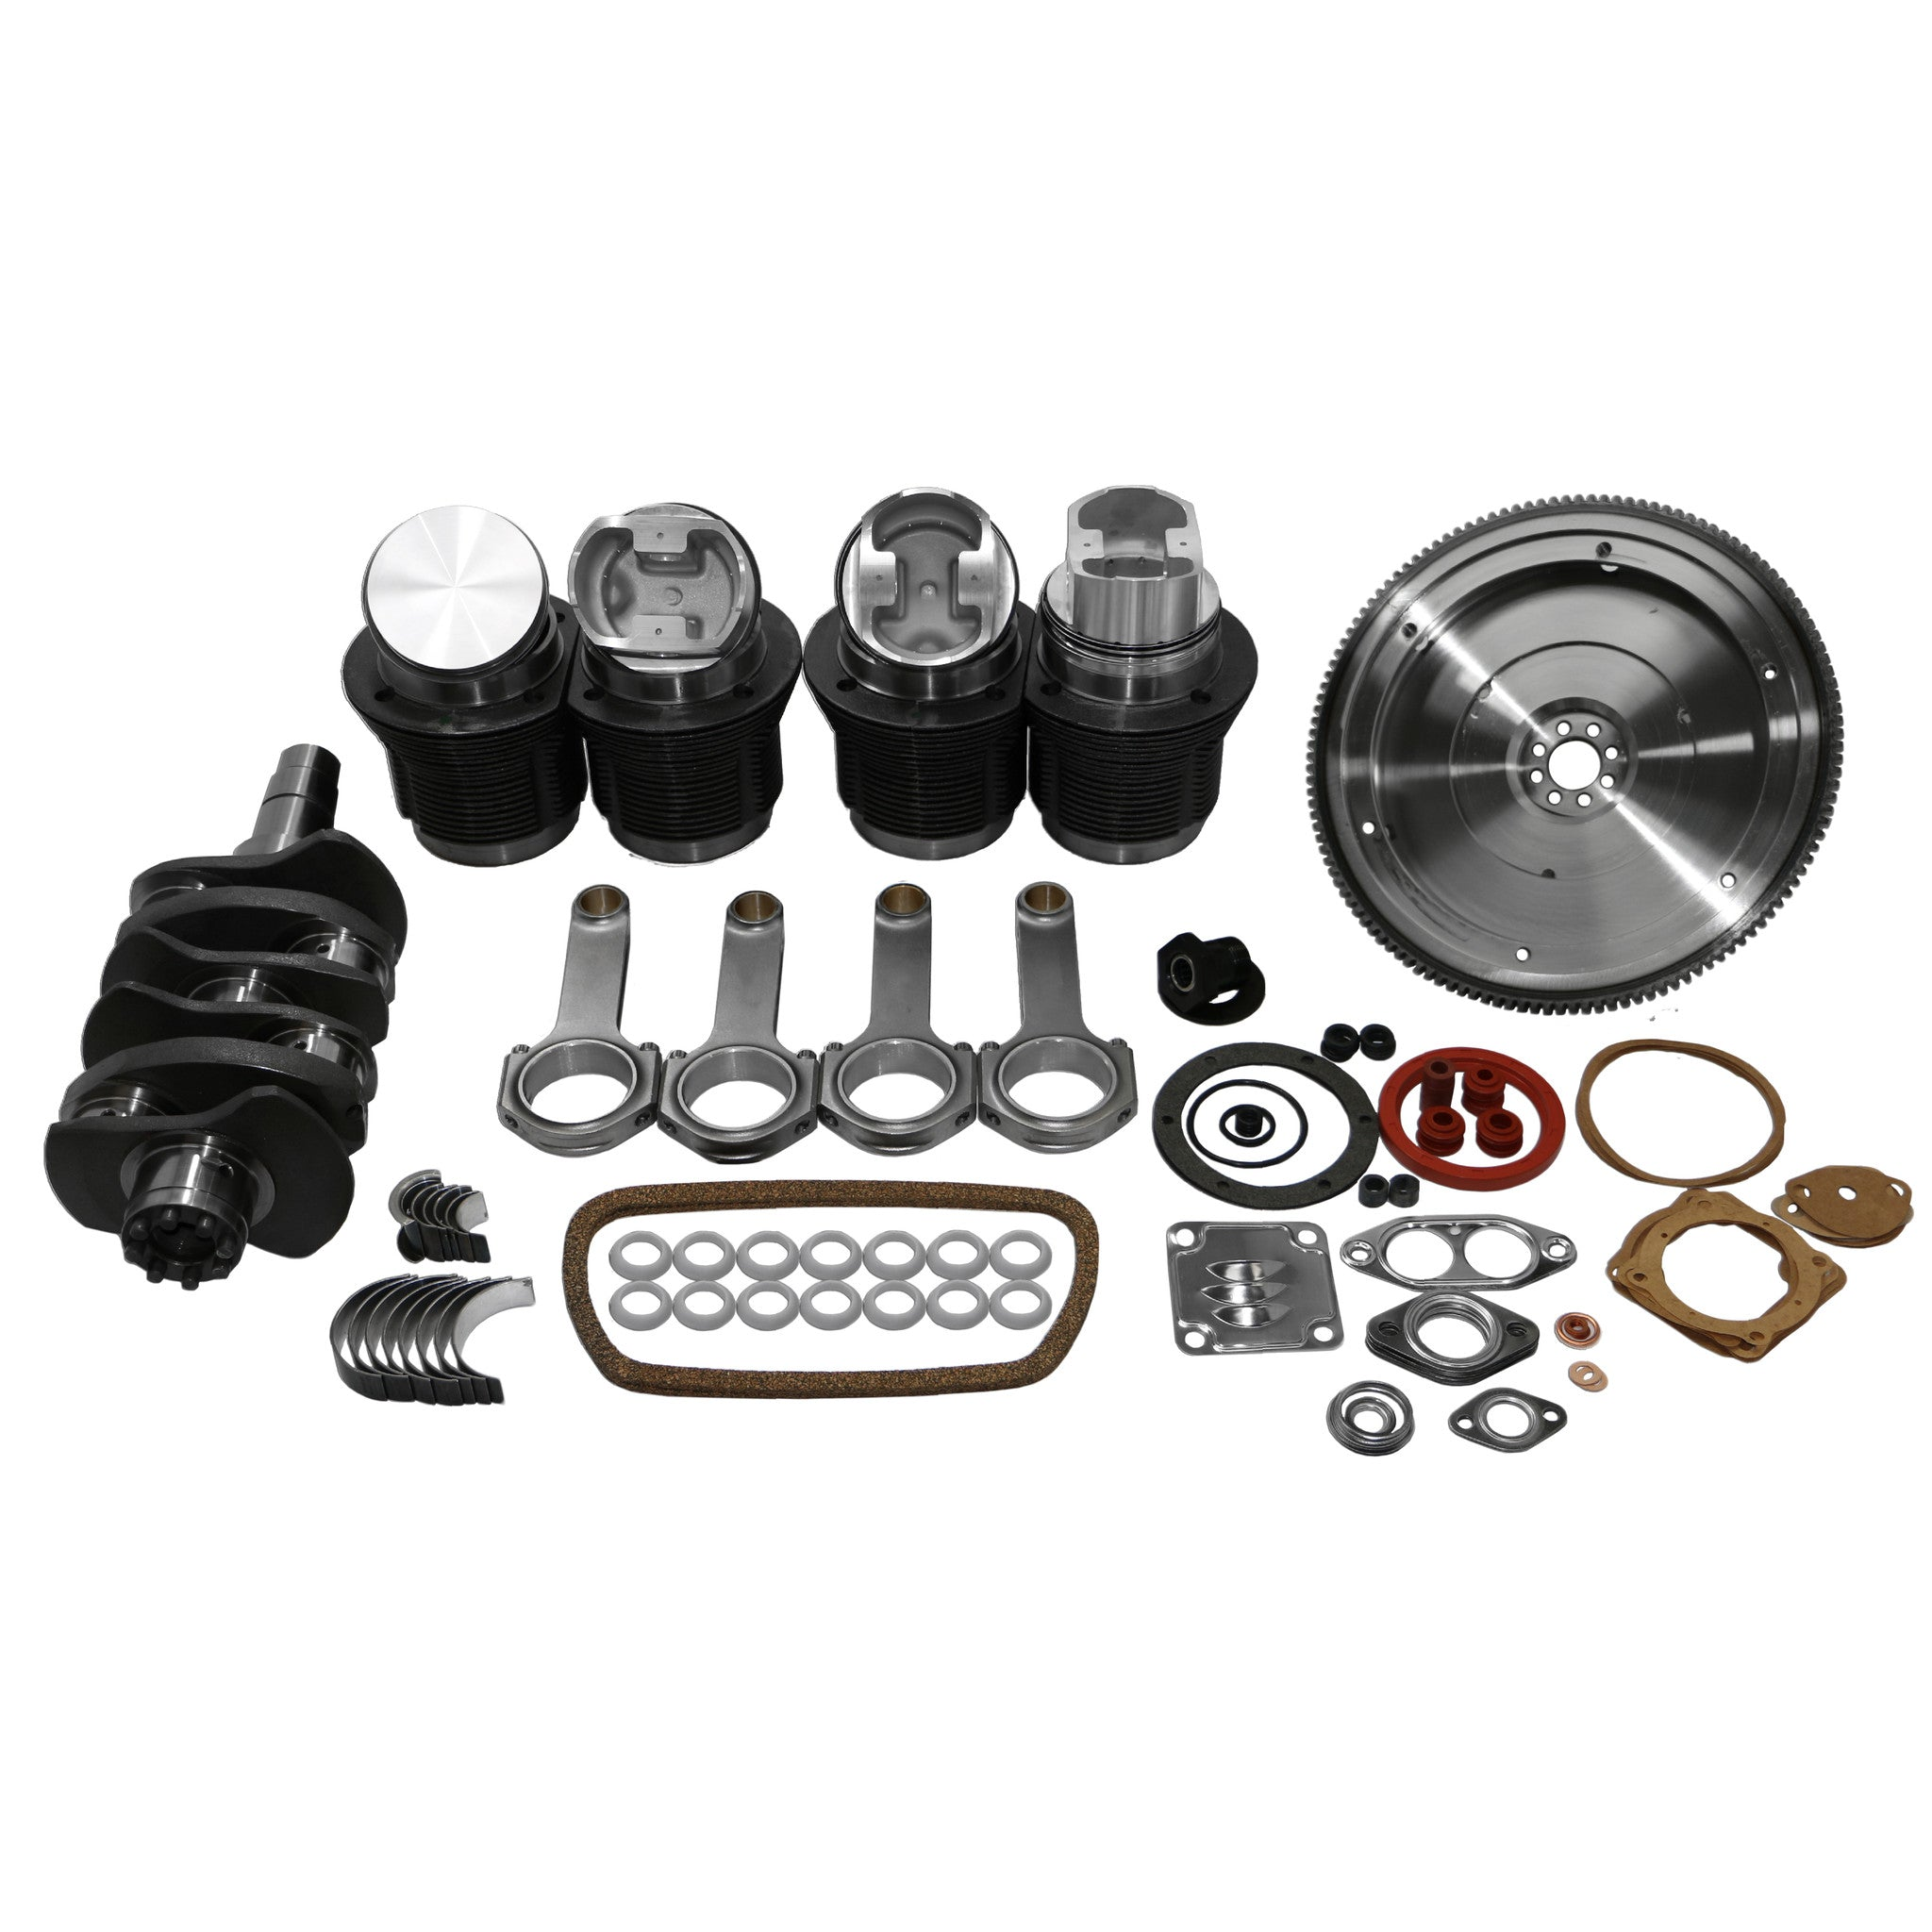 VW Type 1 High Performance PLUS Rebuild Engine Kit | AA Performance